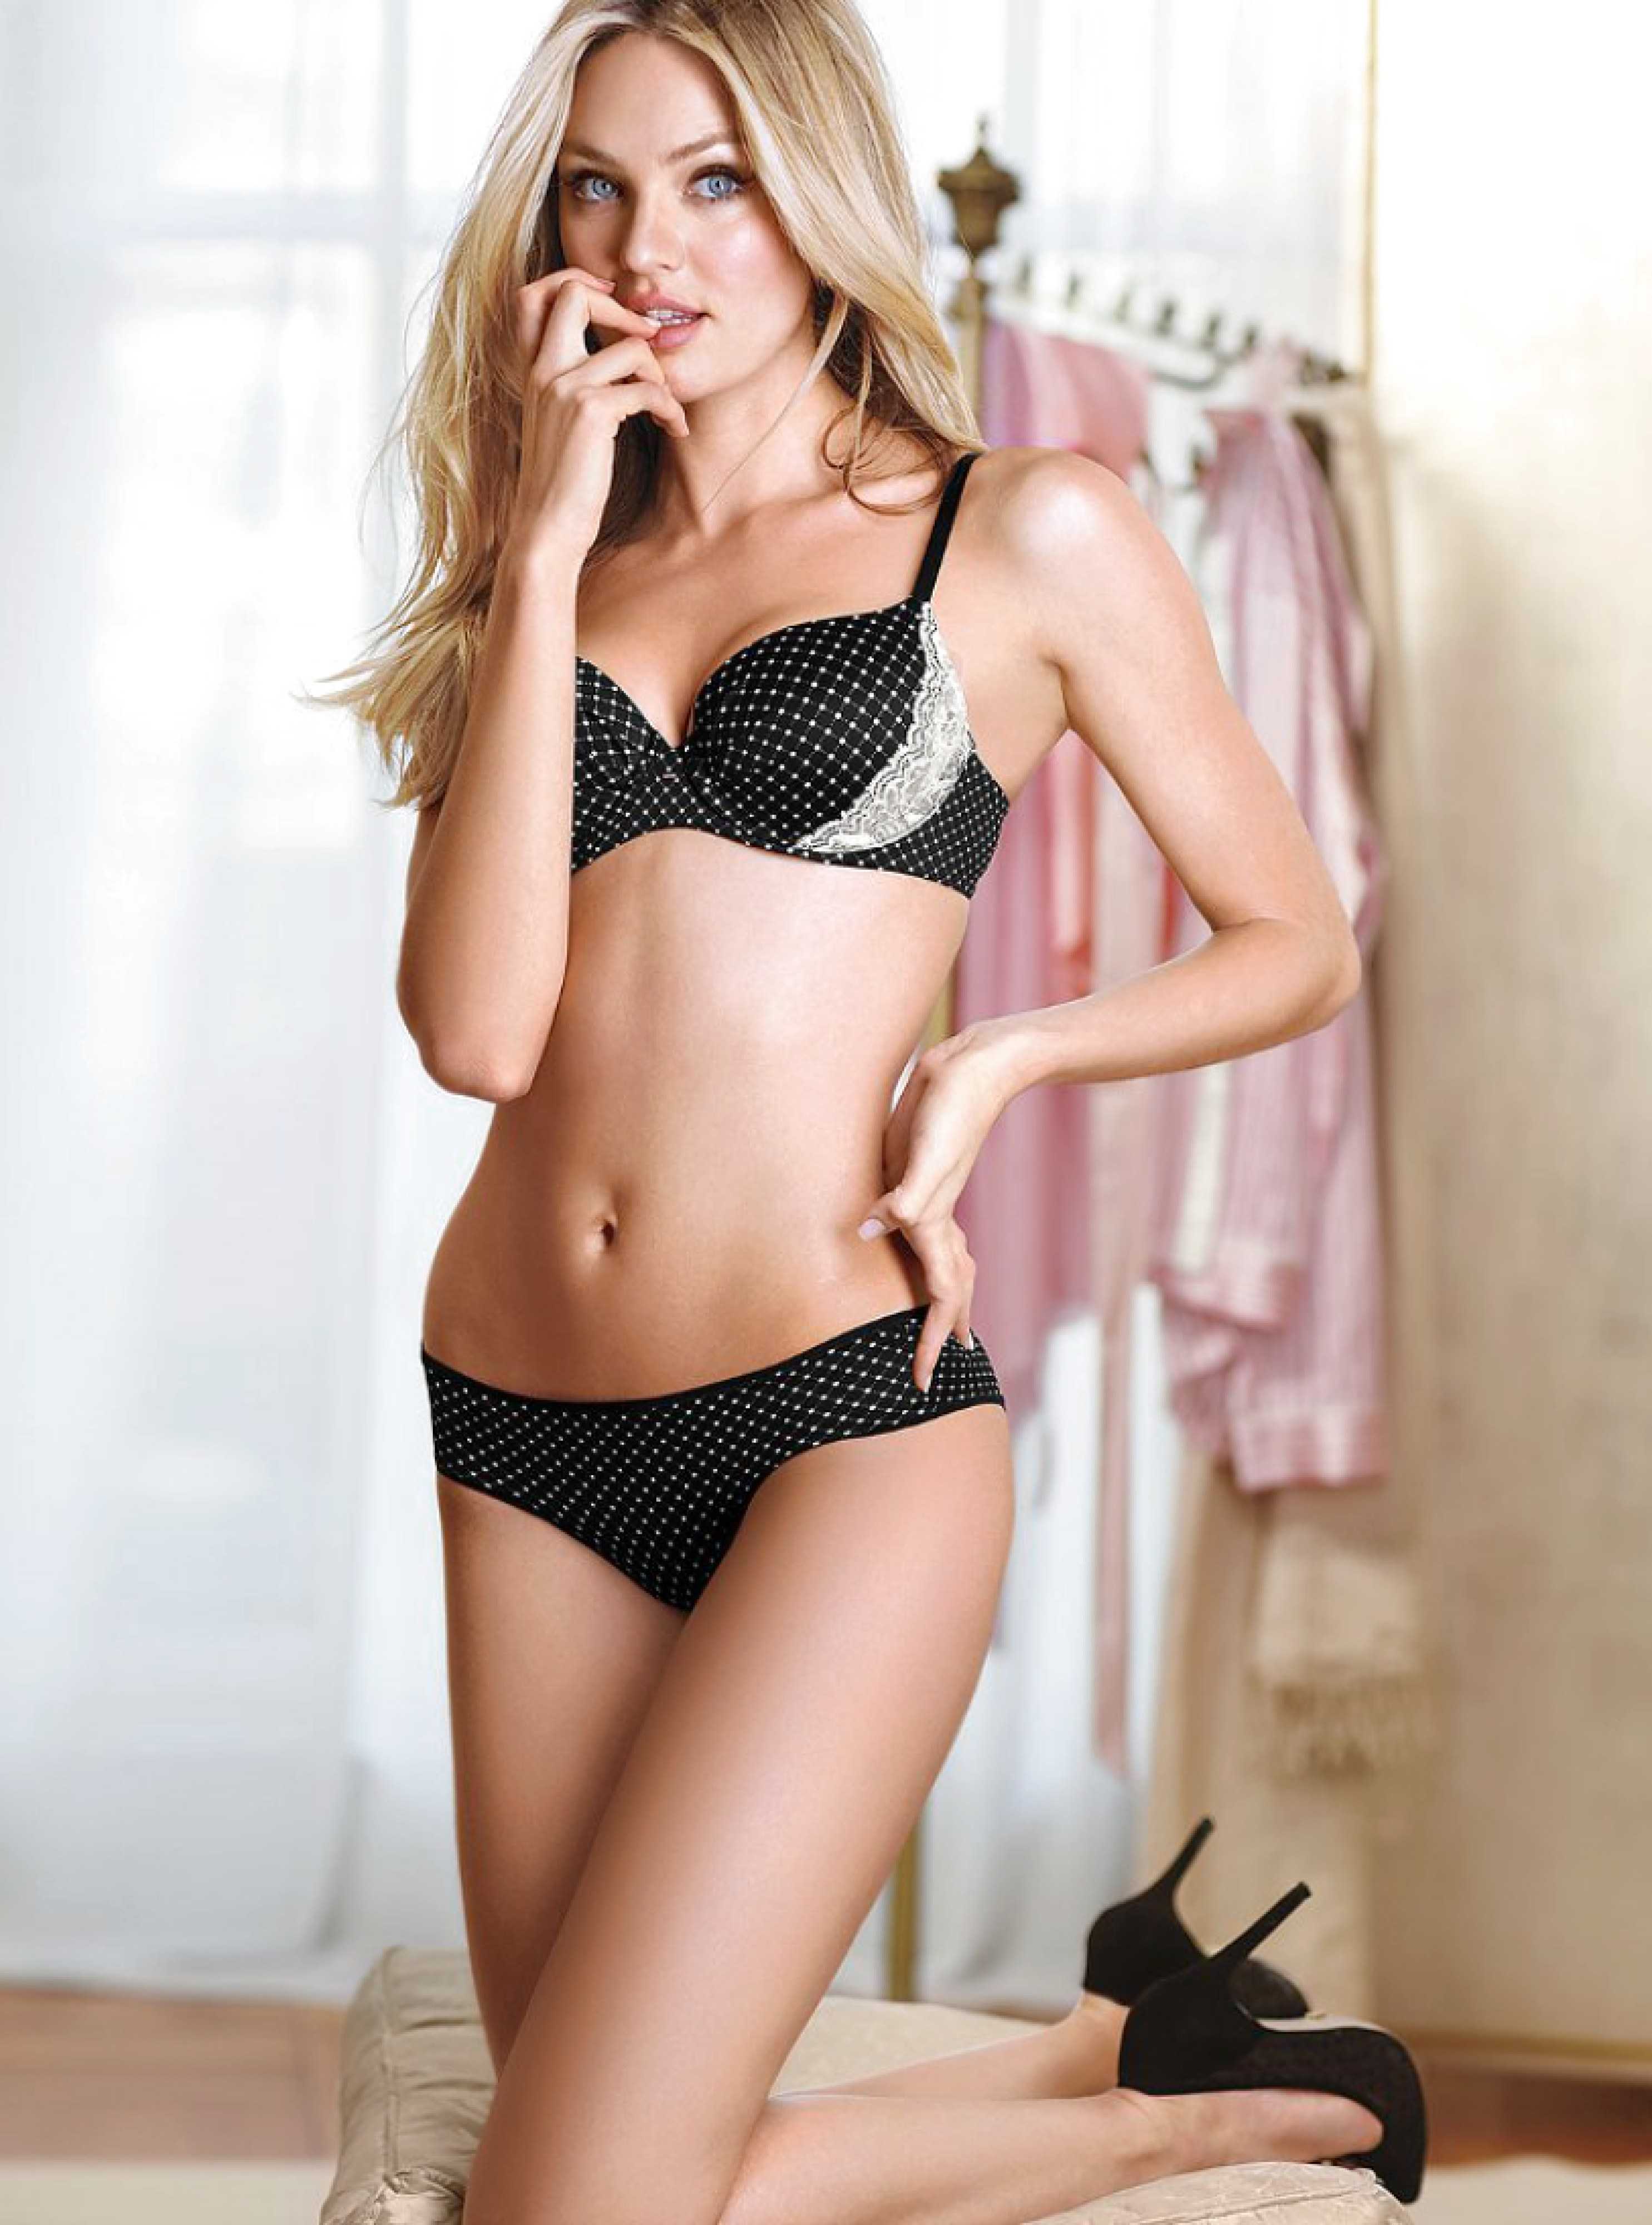 Avail Mumbai Sexy Escorts In A Convenient Price With Us